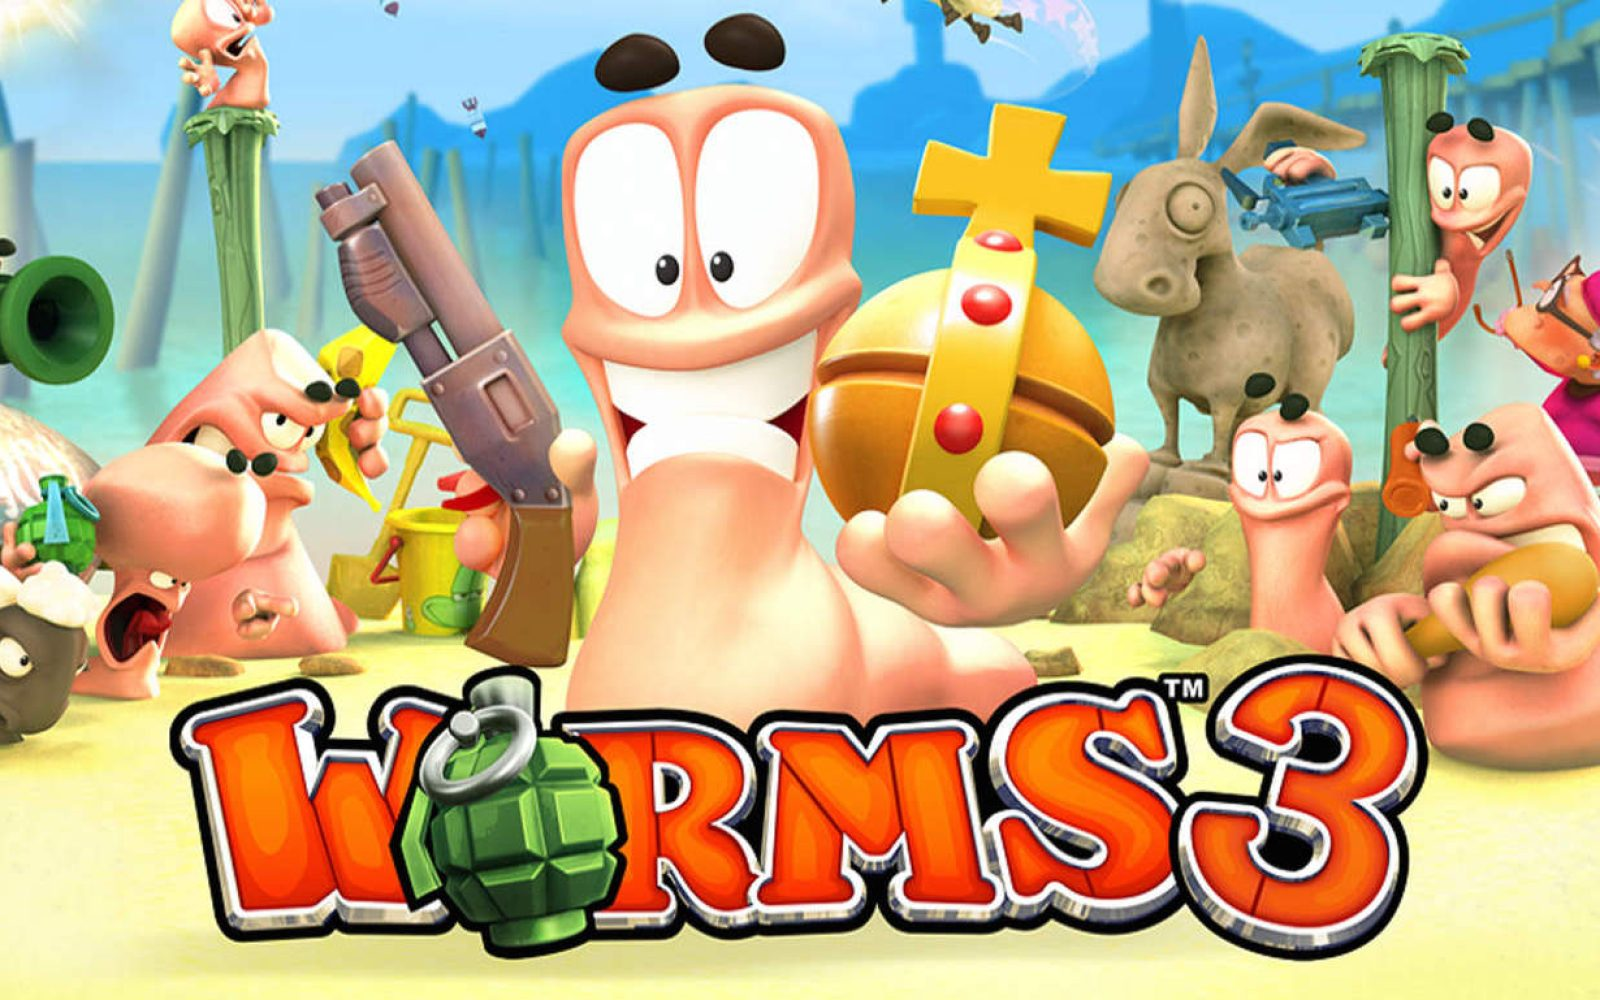 Worms3 - 9to5Toys